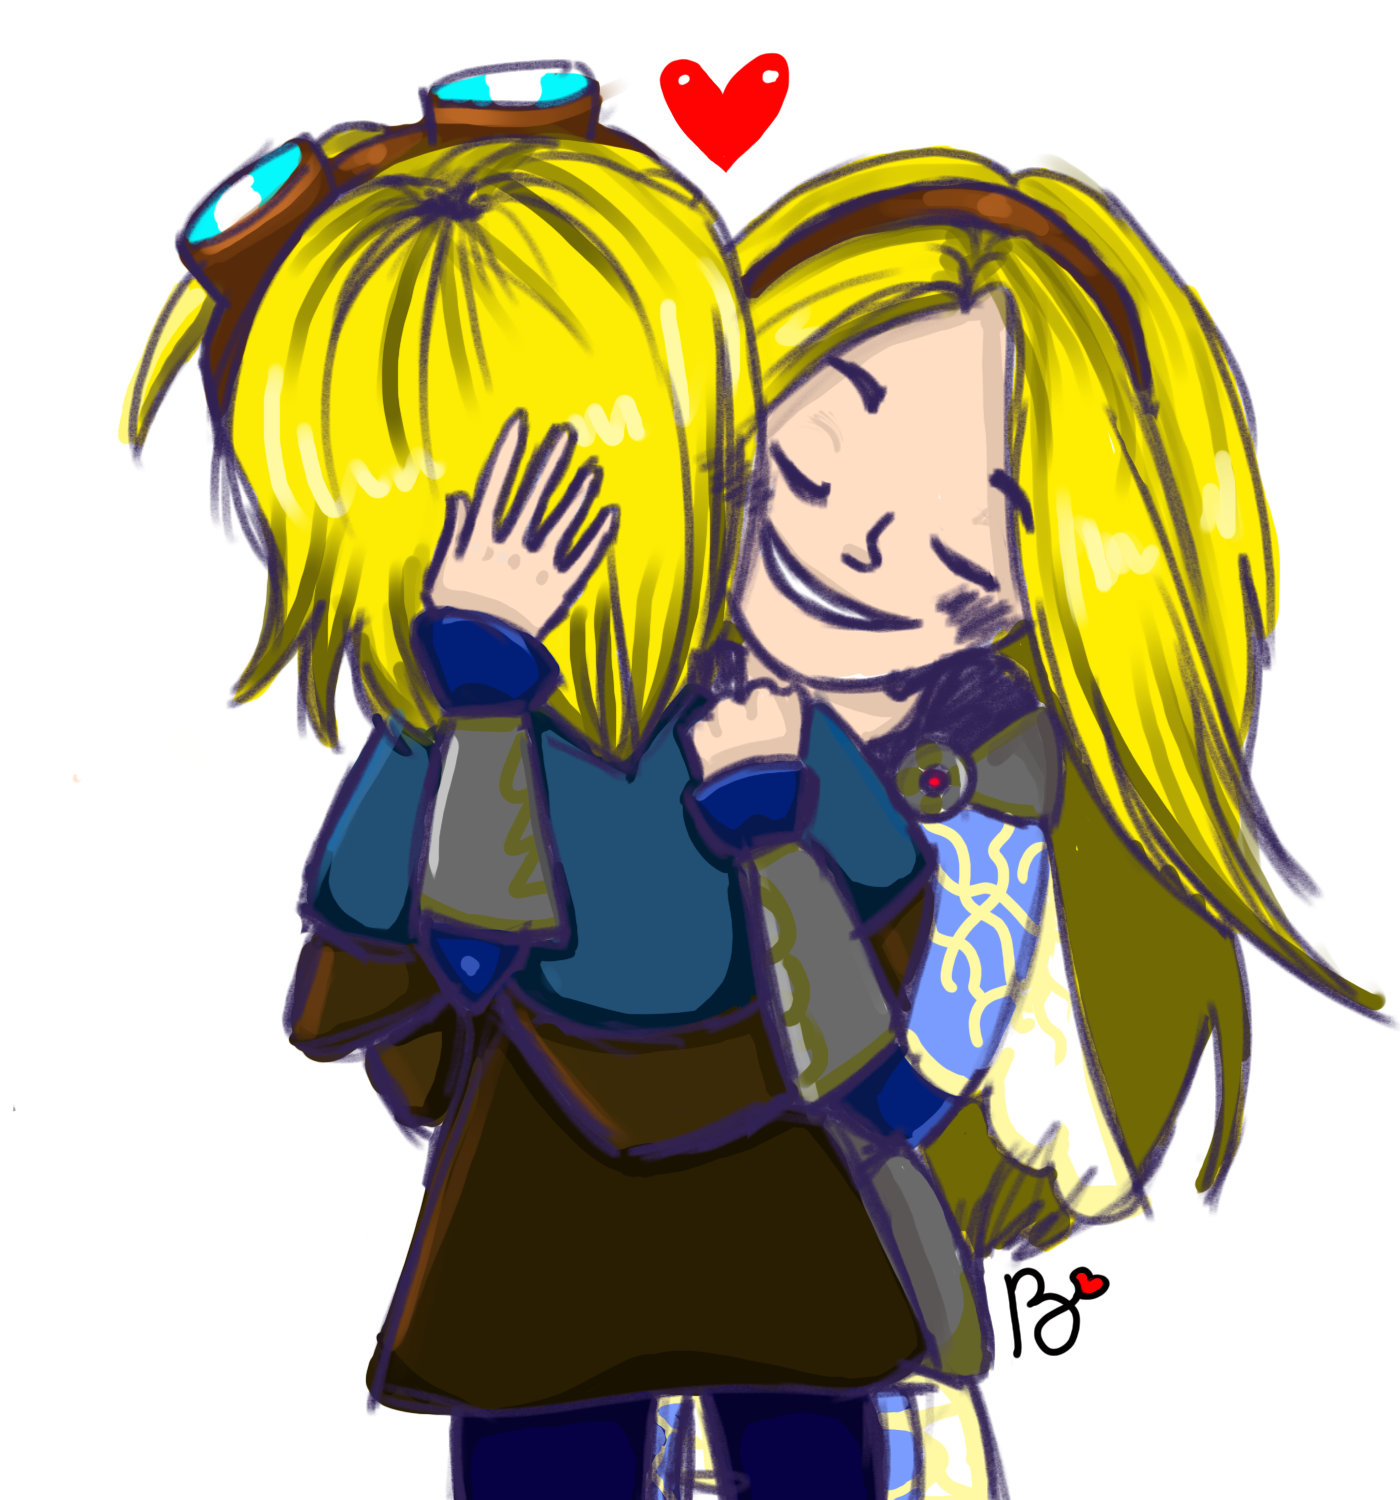 Lux And Ezreal By Bribou99 On Newgrounds